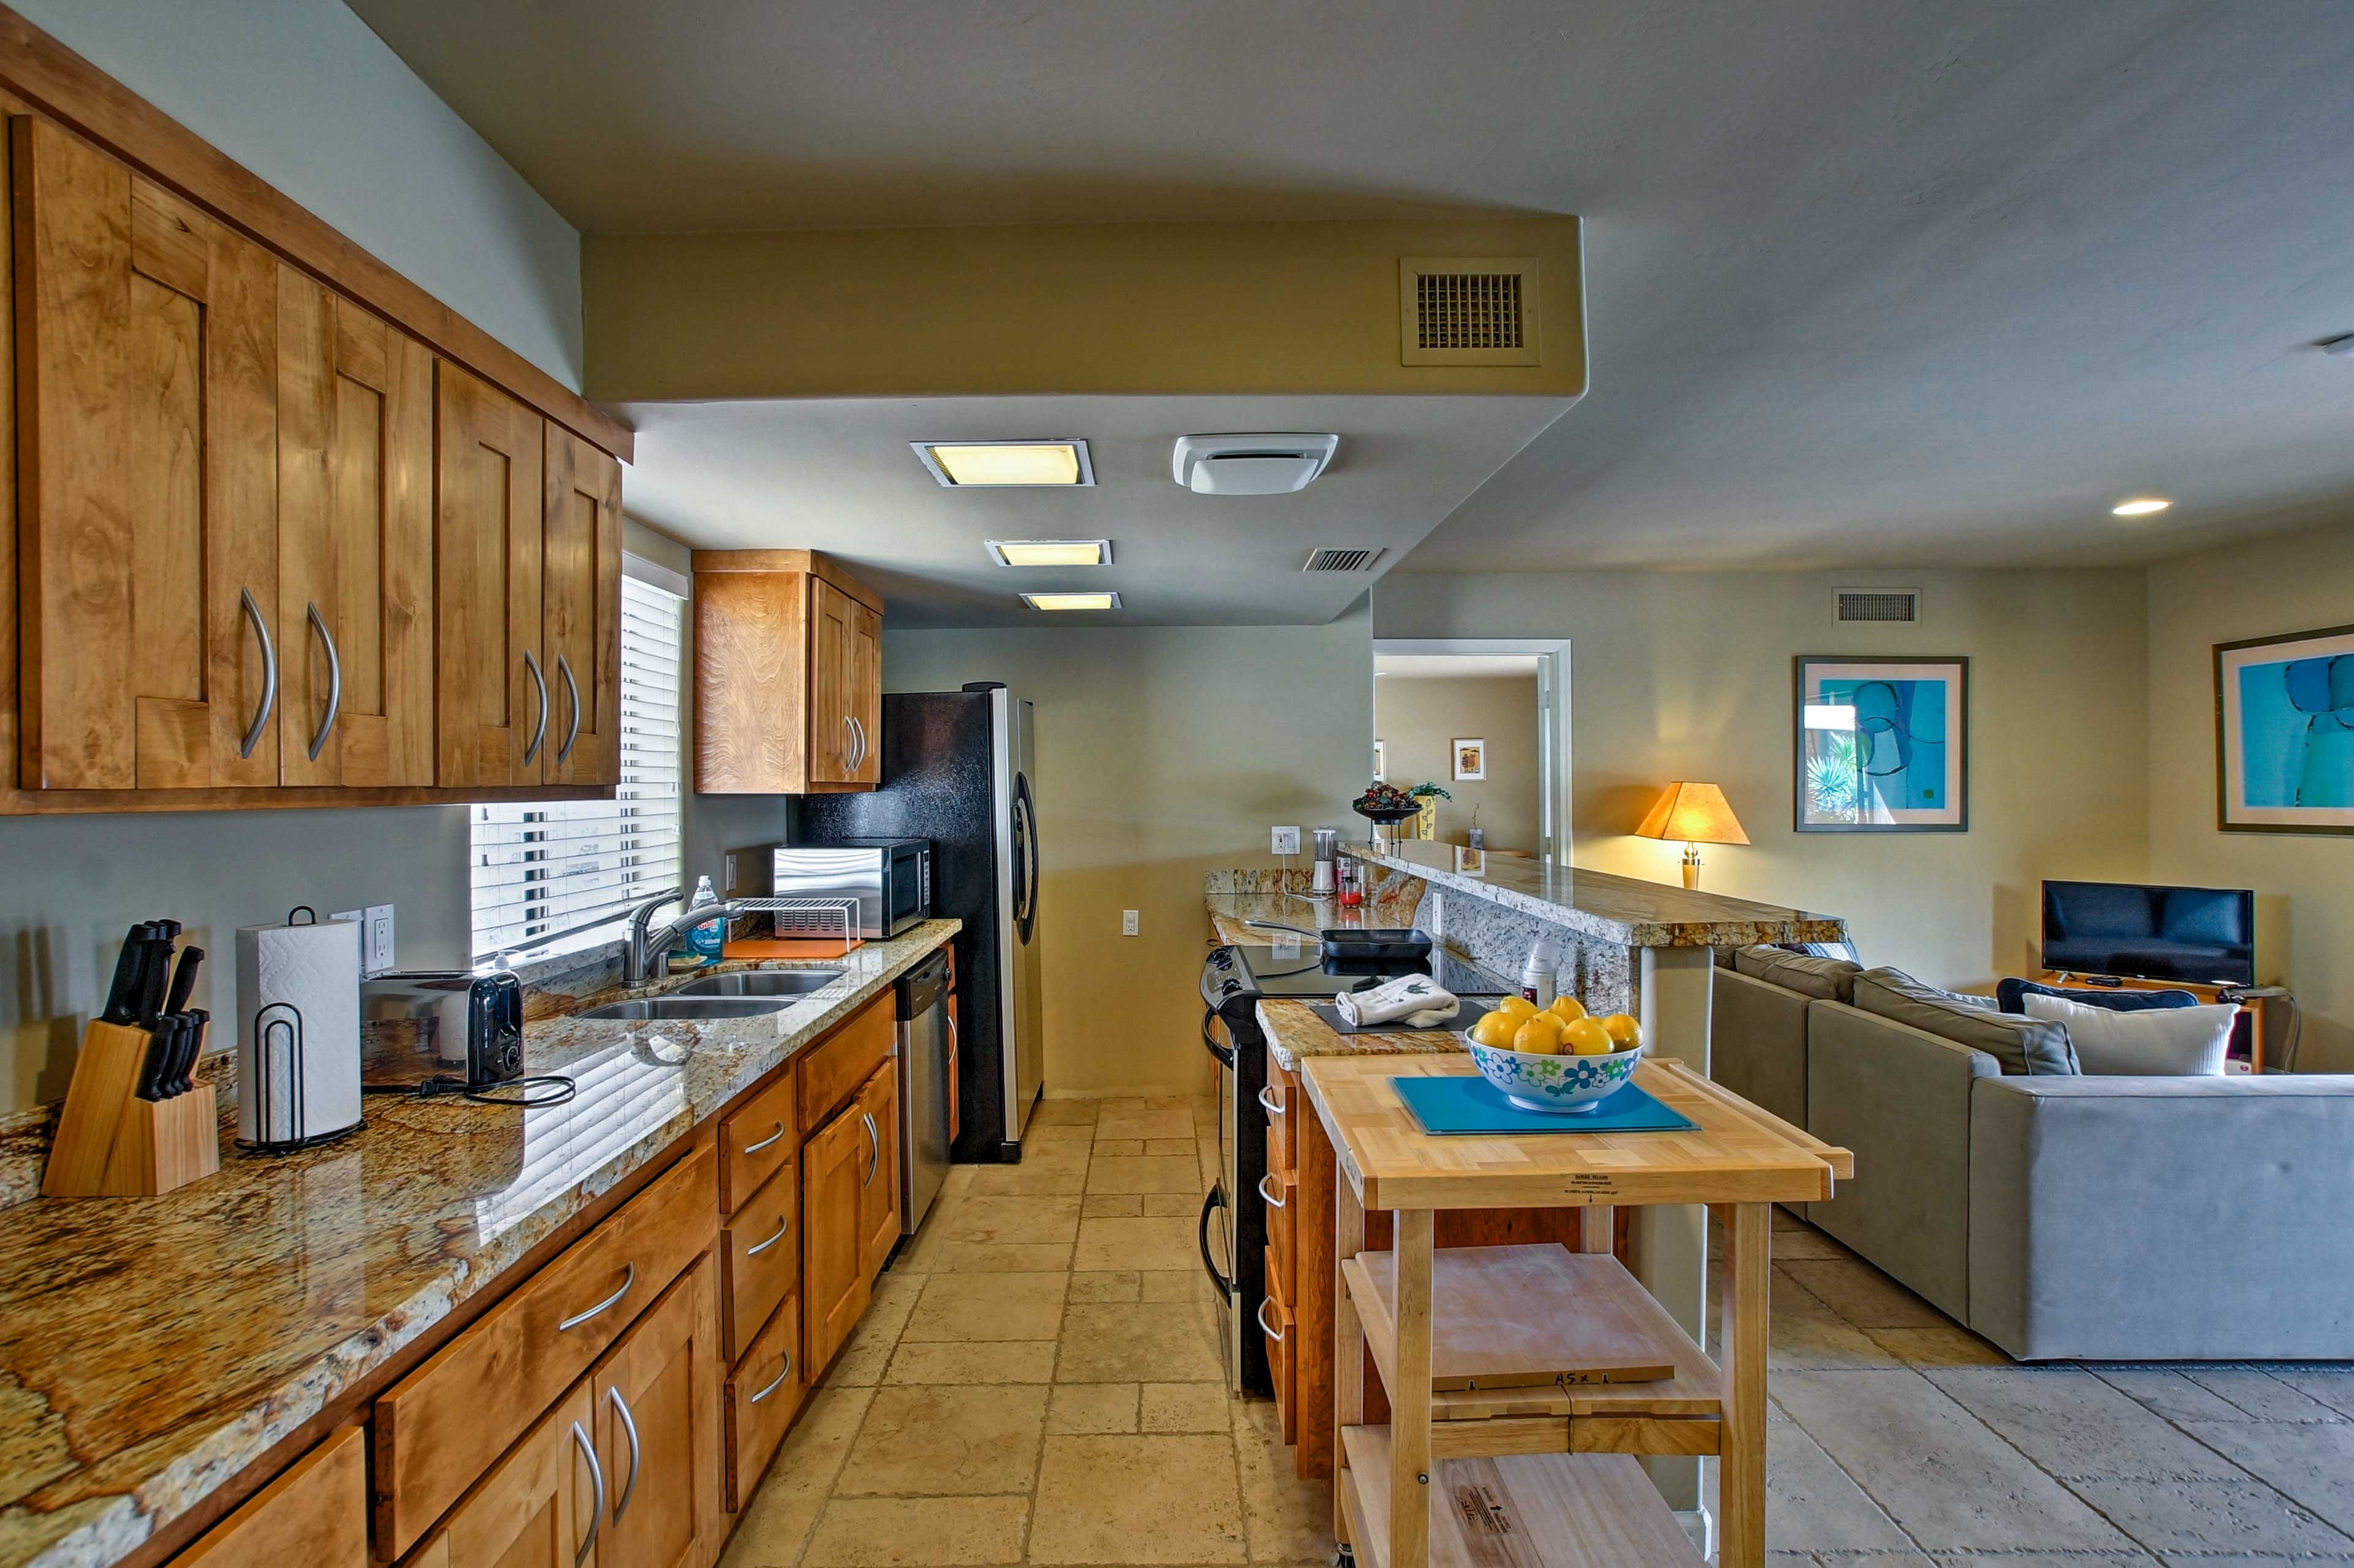 Whip up something delicious in the fully equipped kitchen.